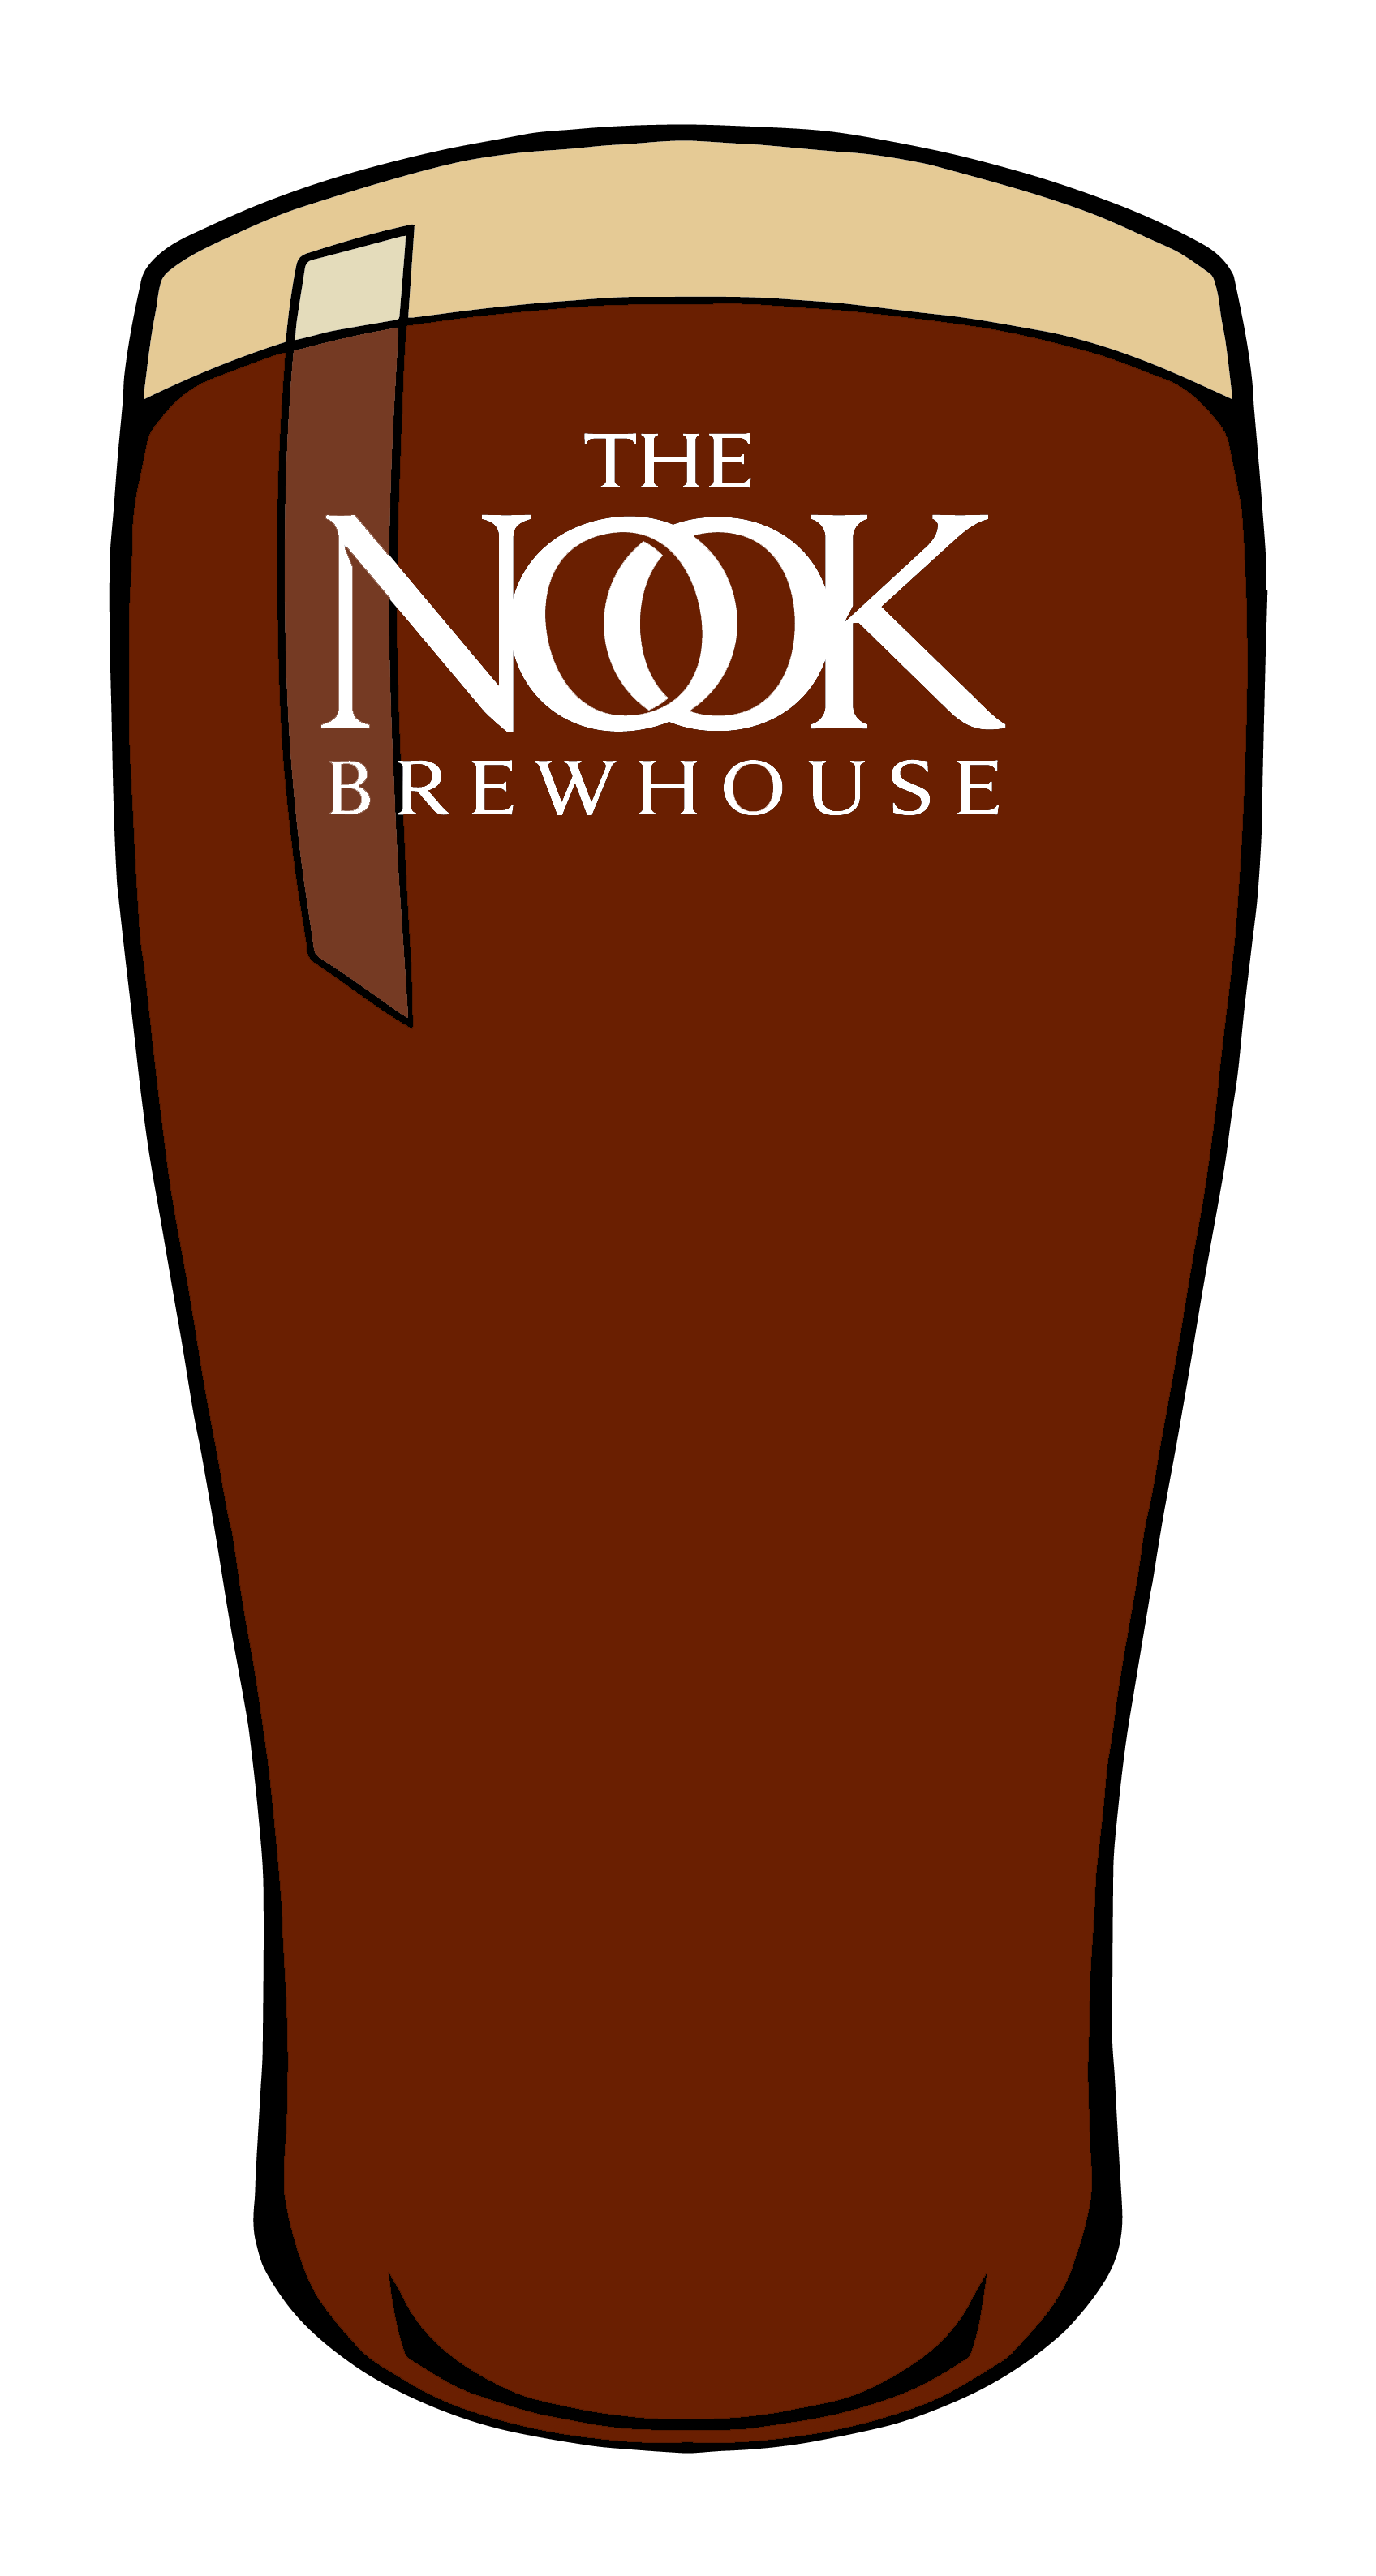 Beer clipart bitter food. Yorks abv the nook